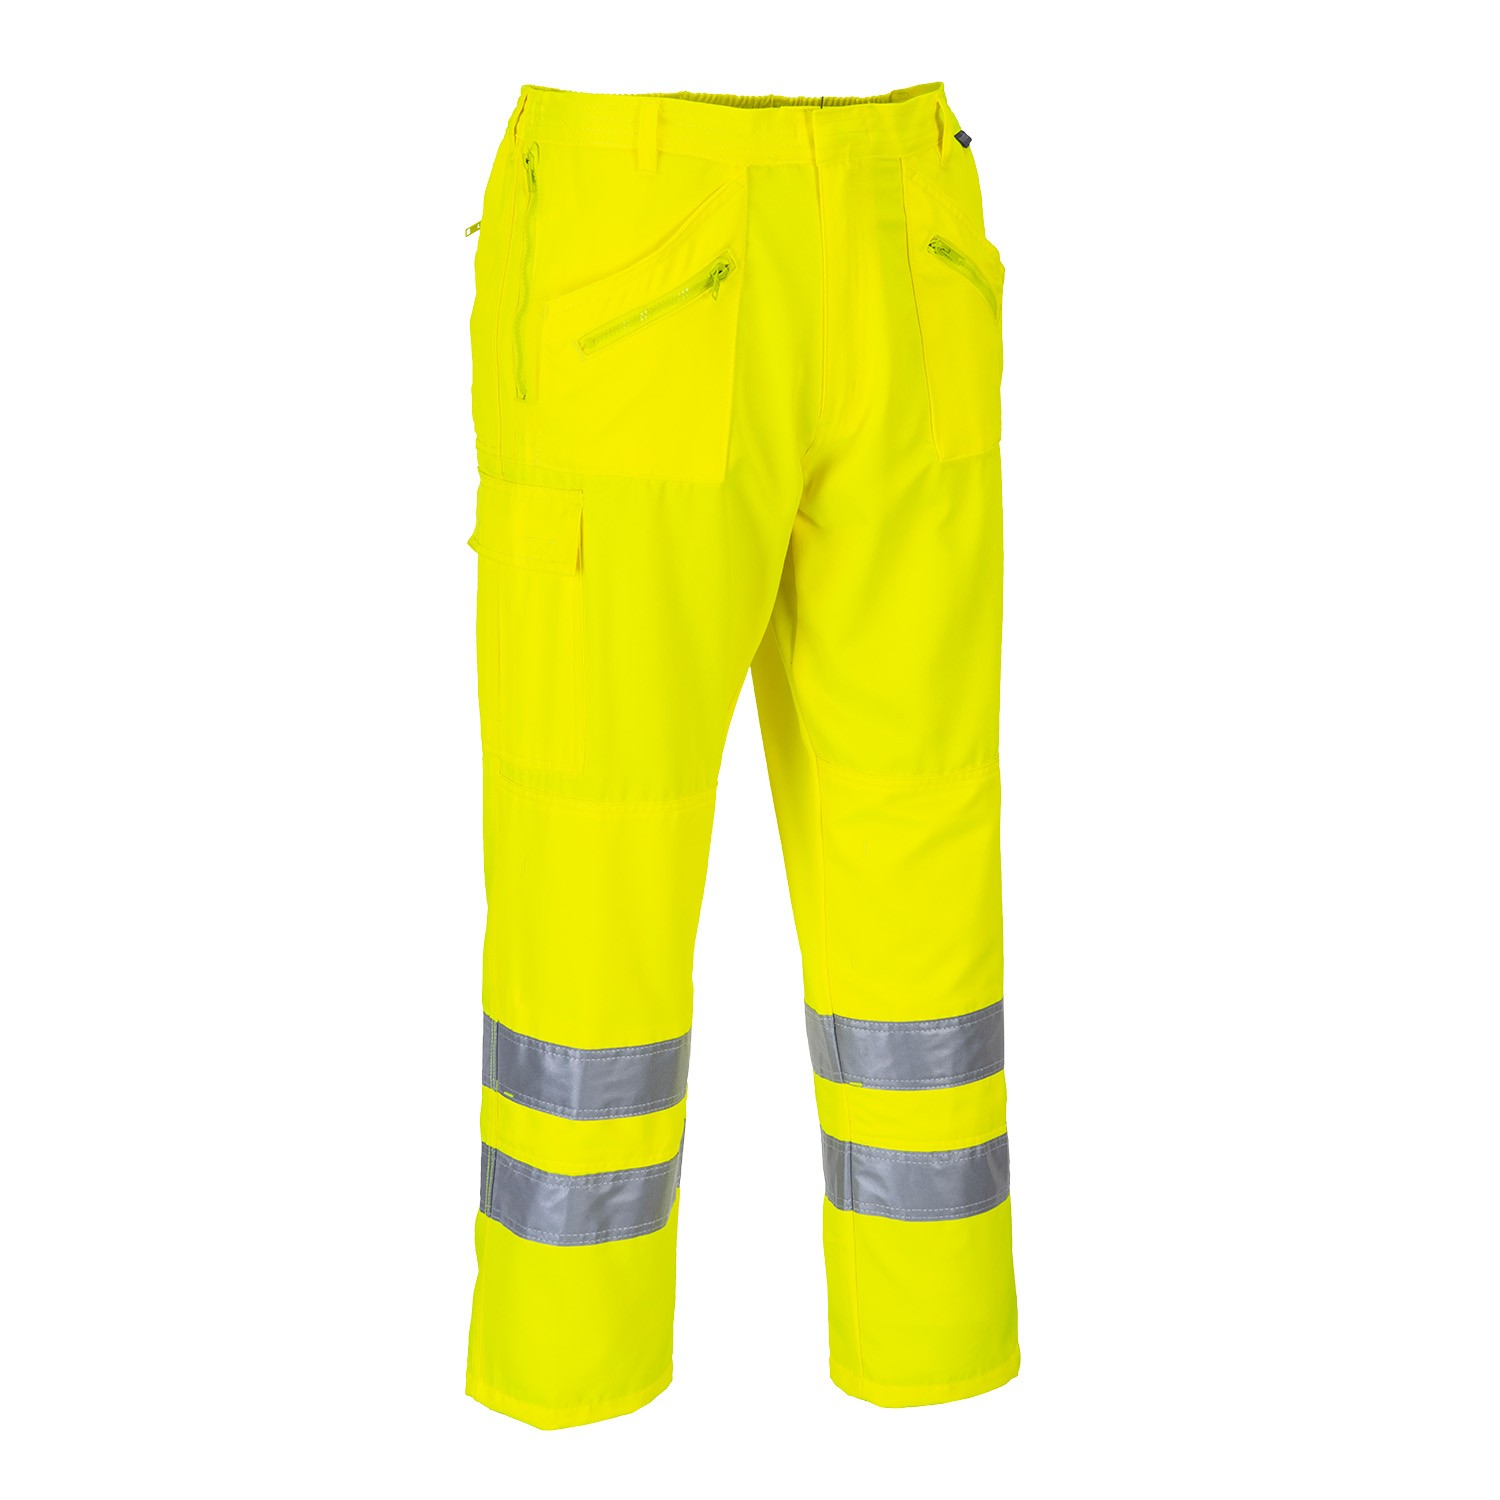 bodyguard-Ladies-HiViz-Action-Trouse